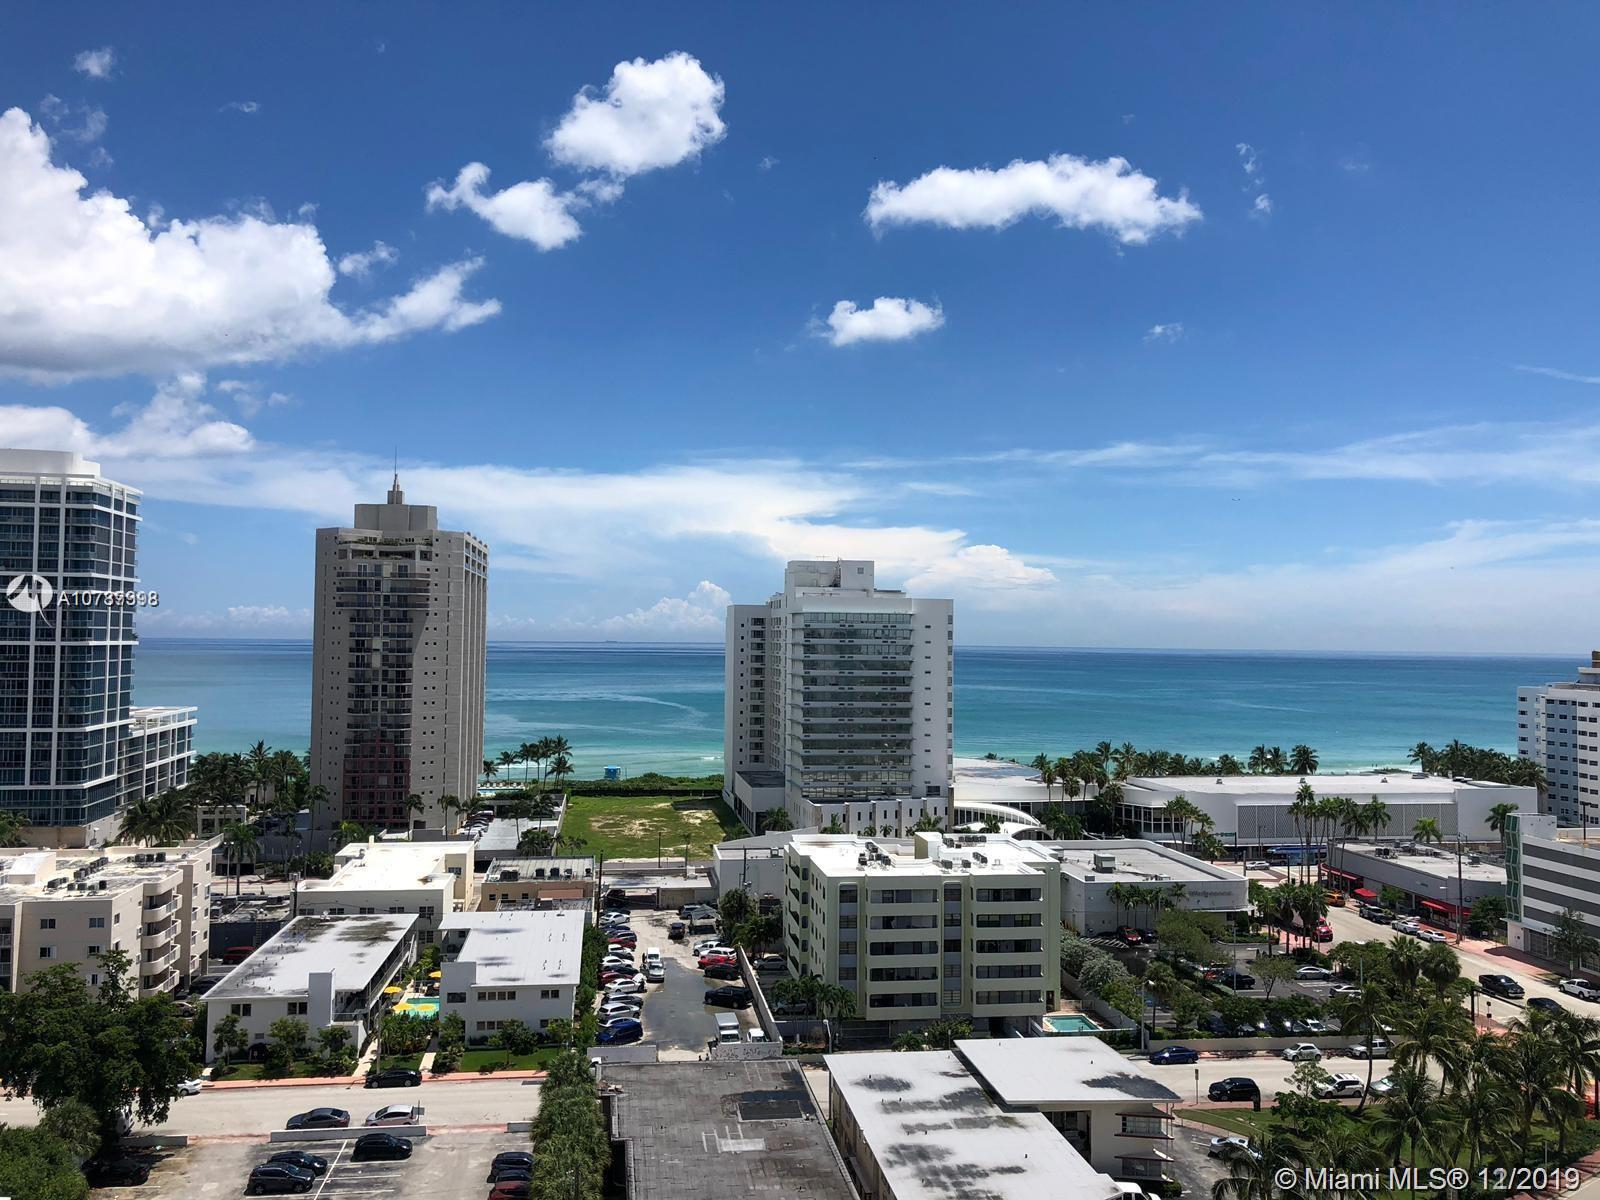 6770 Indian Creek Dr # A, Miami Beach, Florida 33141, 1 Bedroom Bedrooms, ,2 BathroomsBathrooms,Residential,For Sale,6770 Indian Creek Dr # A,A10787398